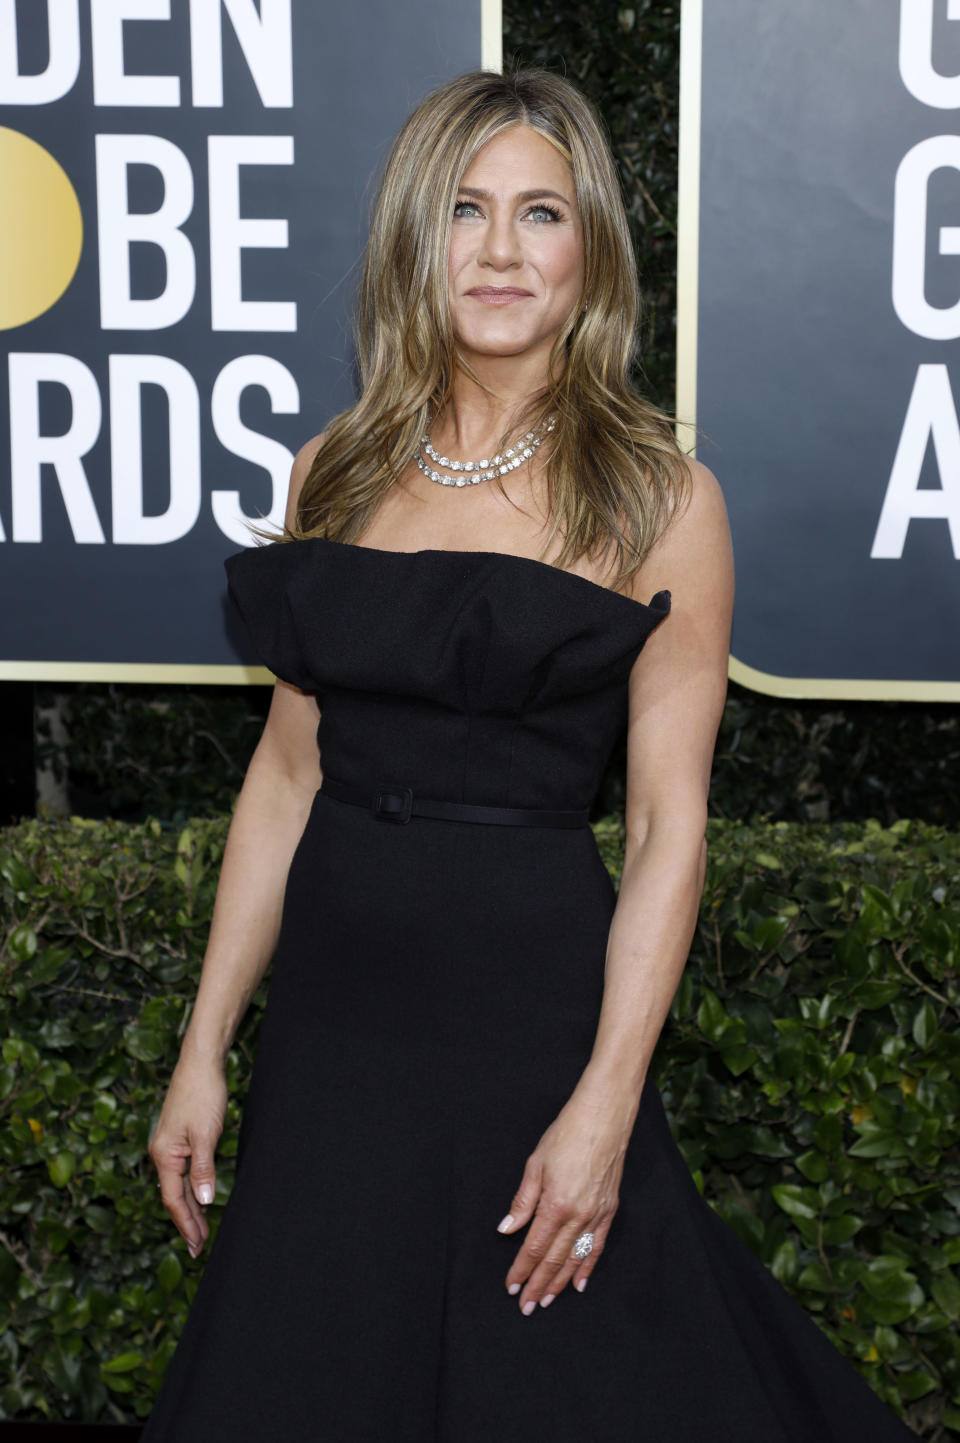 """A perpetual Hollywood favourite, <a href=""""https://ca.search.yahoo.com/search?p=JenniferAniston&fr=fp-tts&fr2"""" data-ylk=""""slk:Jennifer Aniston's"""" class=""""link rapid-noclick-resp"""">Jennifer Aniston's</a> year was filled with memorable red carpet moments, including the aforementioned run-in with ex-husband, Brad Pitt. Aside from nabbing a Screen Actors Guild Award for her role on """"The Morning Show"""", Aniston remained relatively low-key during 2020. The 51-year-old spent her time raising money for COVID-19 relief and used social media to urge her more than 35.6 million followers to follow pandemic safety regulations and encouraged eligible votes to participate in the 2020 U.S. presidential election. Towards the end of the year, Aniston revealed she was back on set to film season 2 of """"The Morning Show"""" for AppleTV+."""